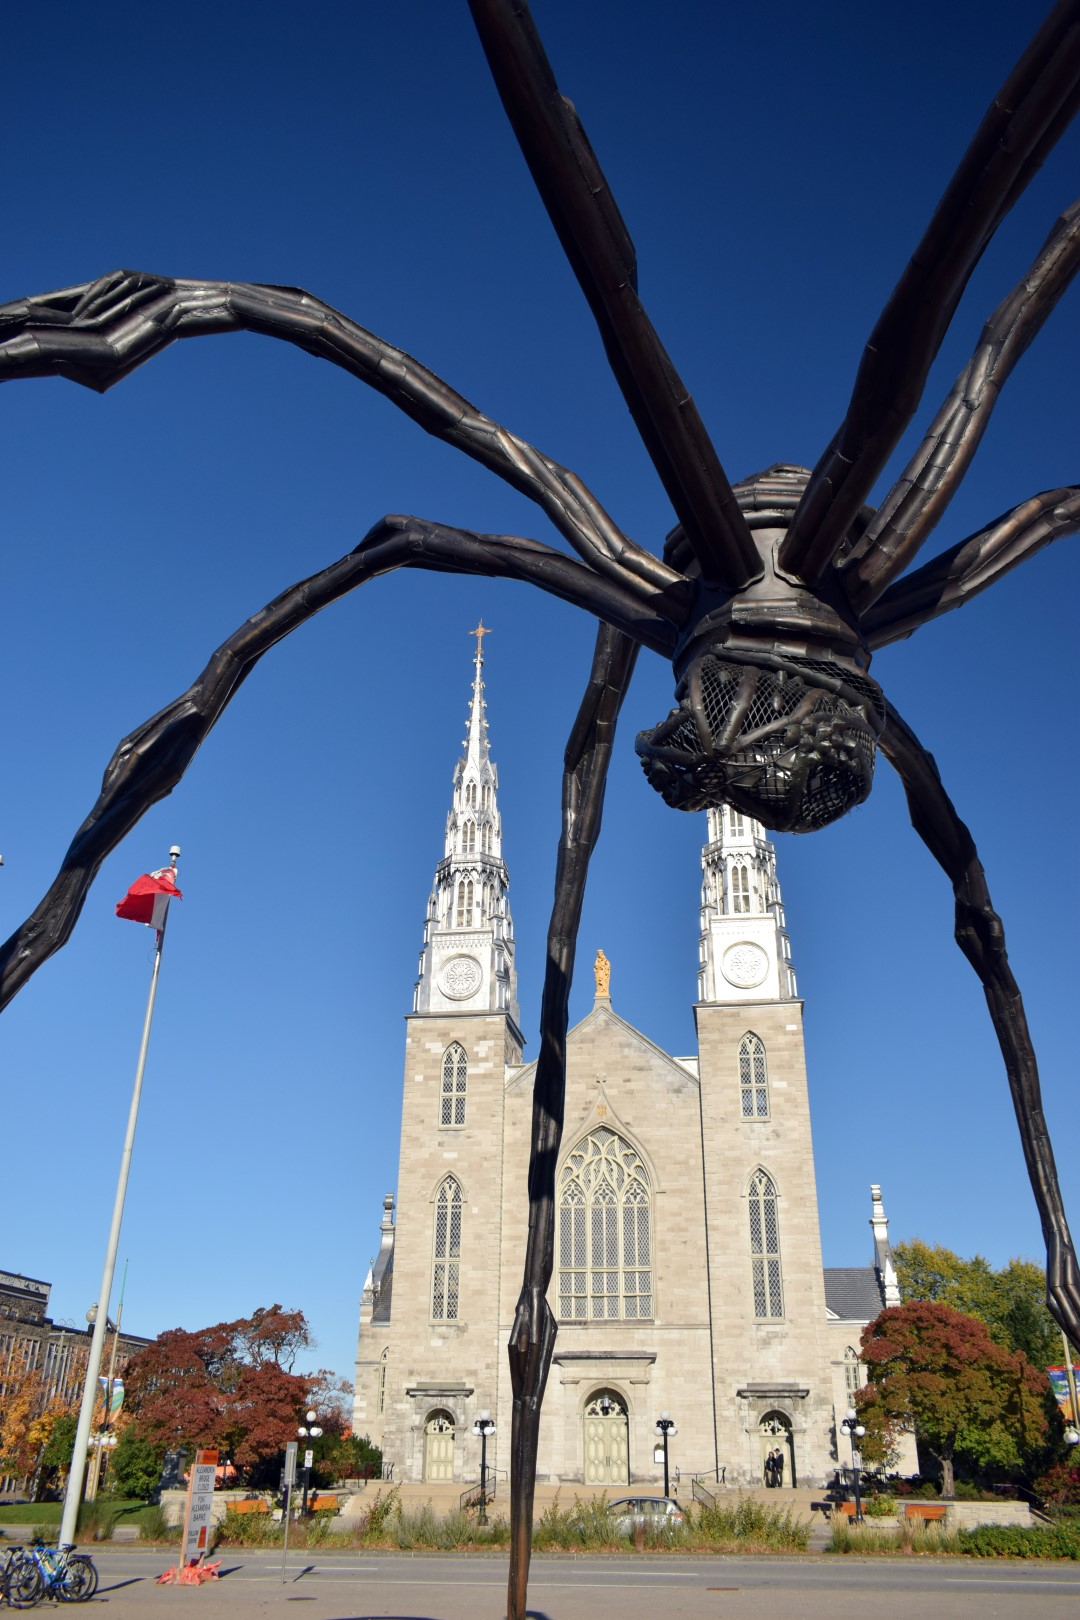 The Maman statue, National Gallery of Canada, Sussex Dr, Ottawa